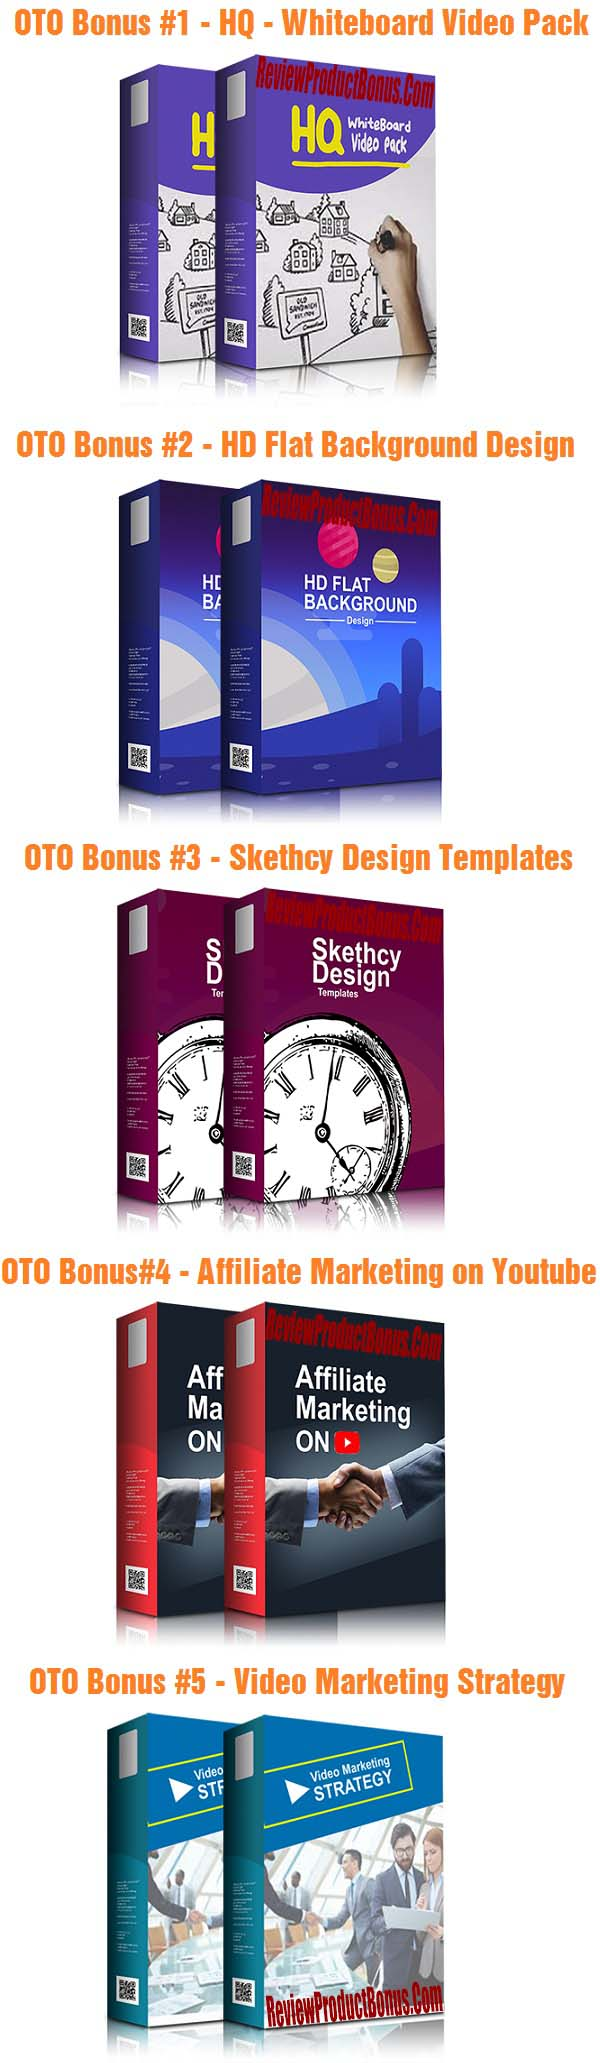 Famous Video Templates Bonus OTO